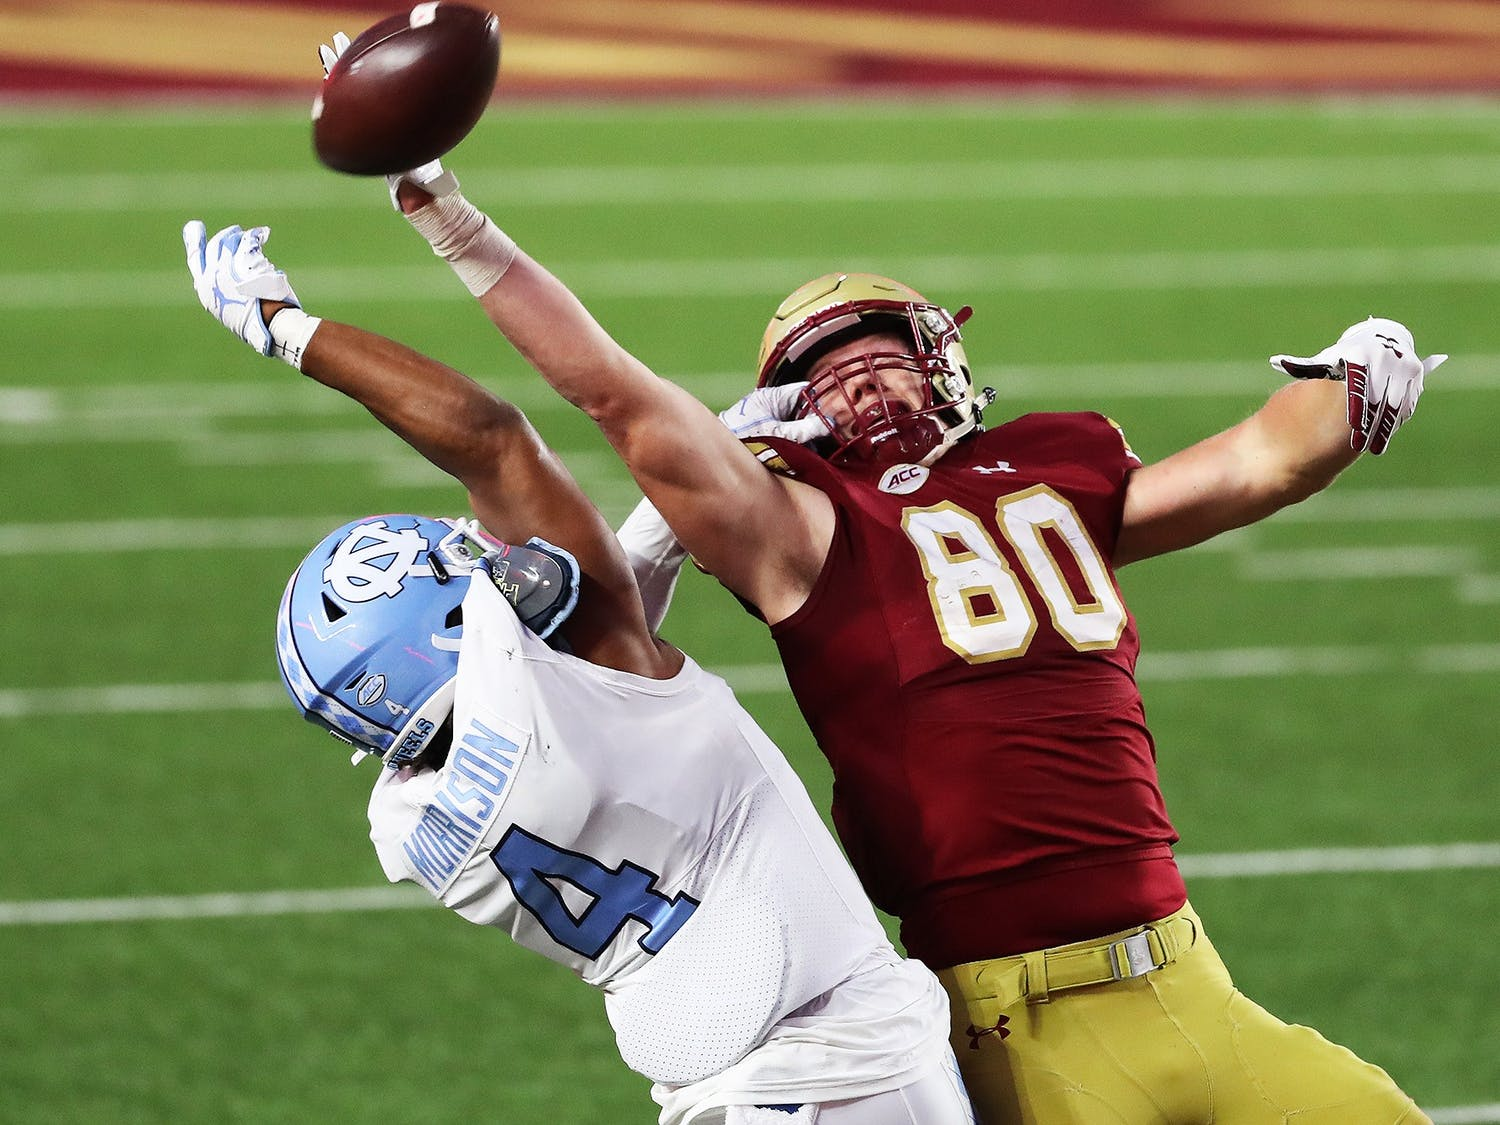 UNC junior defensive back Trey Morrison (4) attempts to block a pass to Boston College redshirt junior tight end Hunter Long (80) during a game on Saturday, Oct. 3, 2020. UNC beat Boston College 26-22. Photo courtesy of ACC Media.